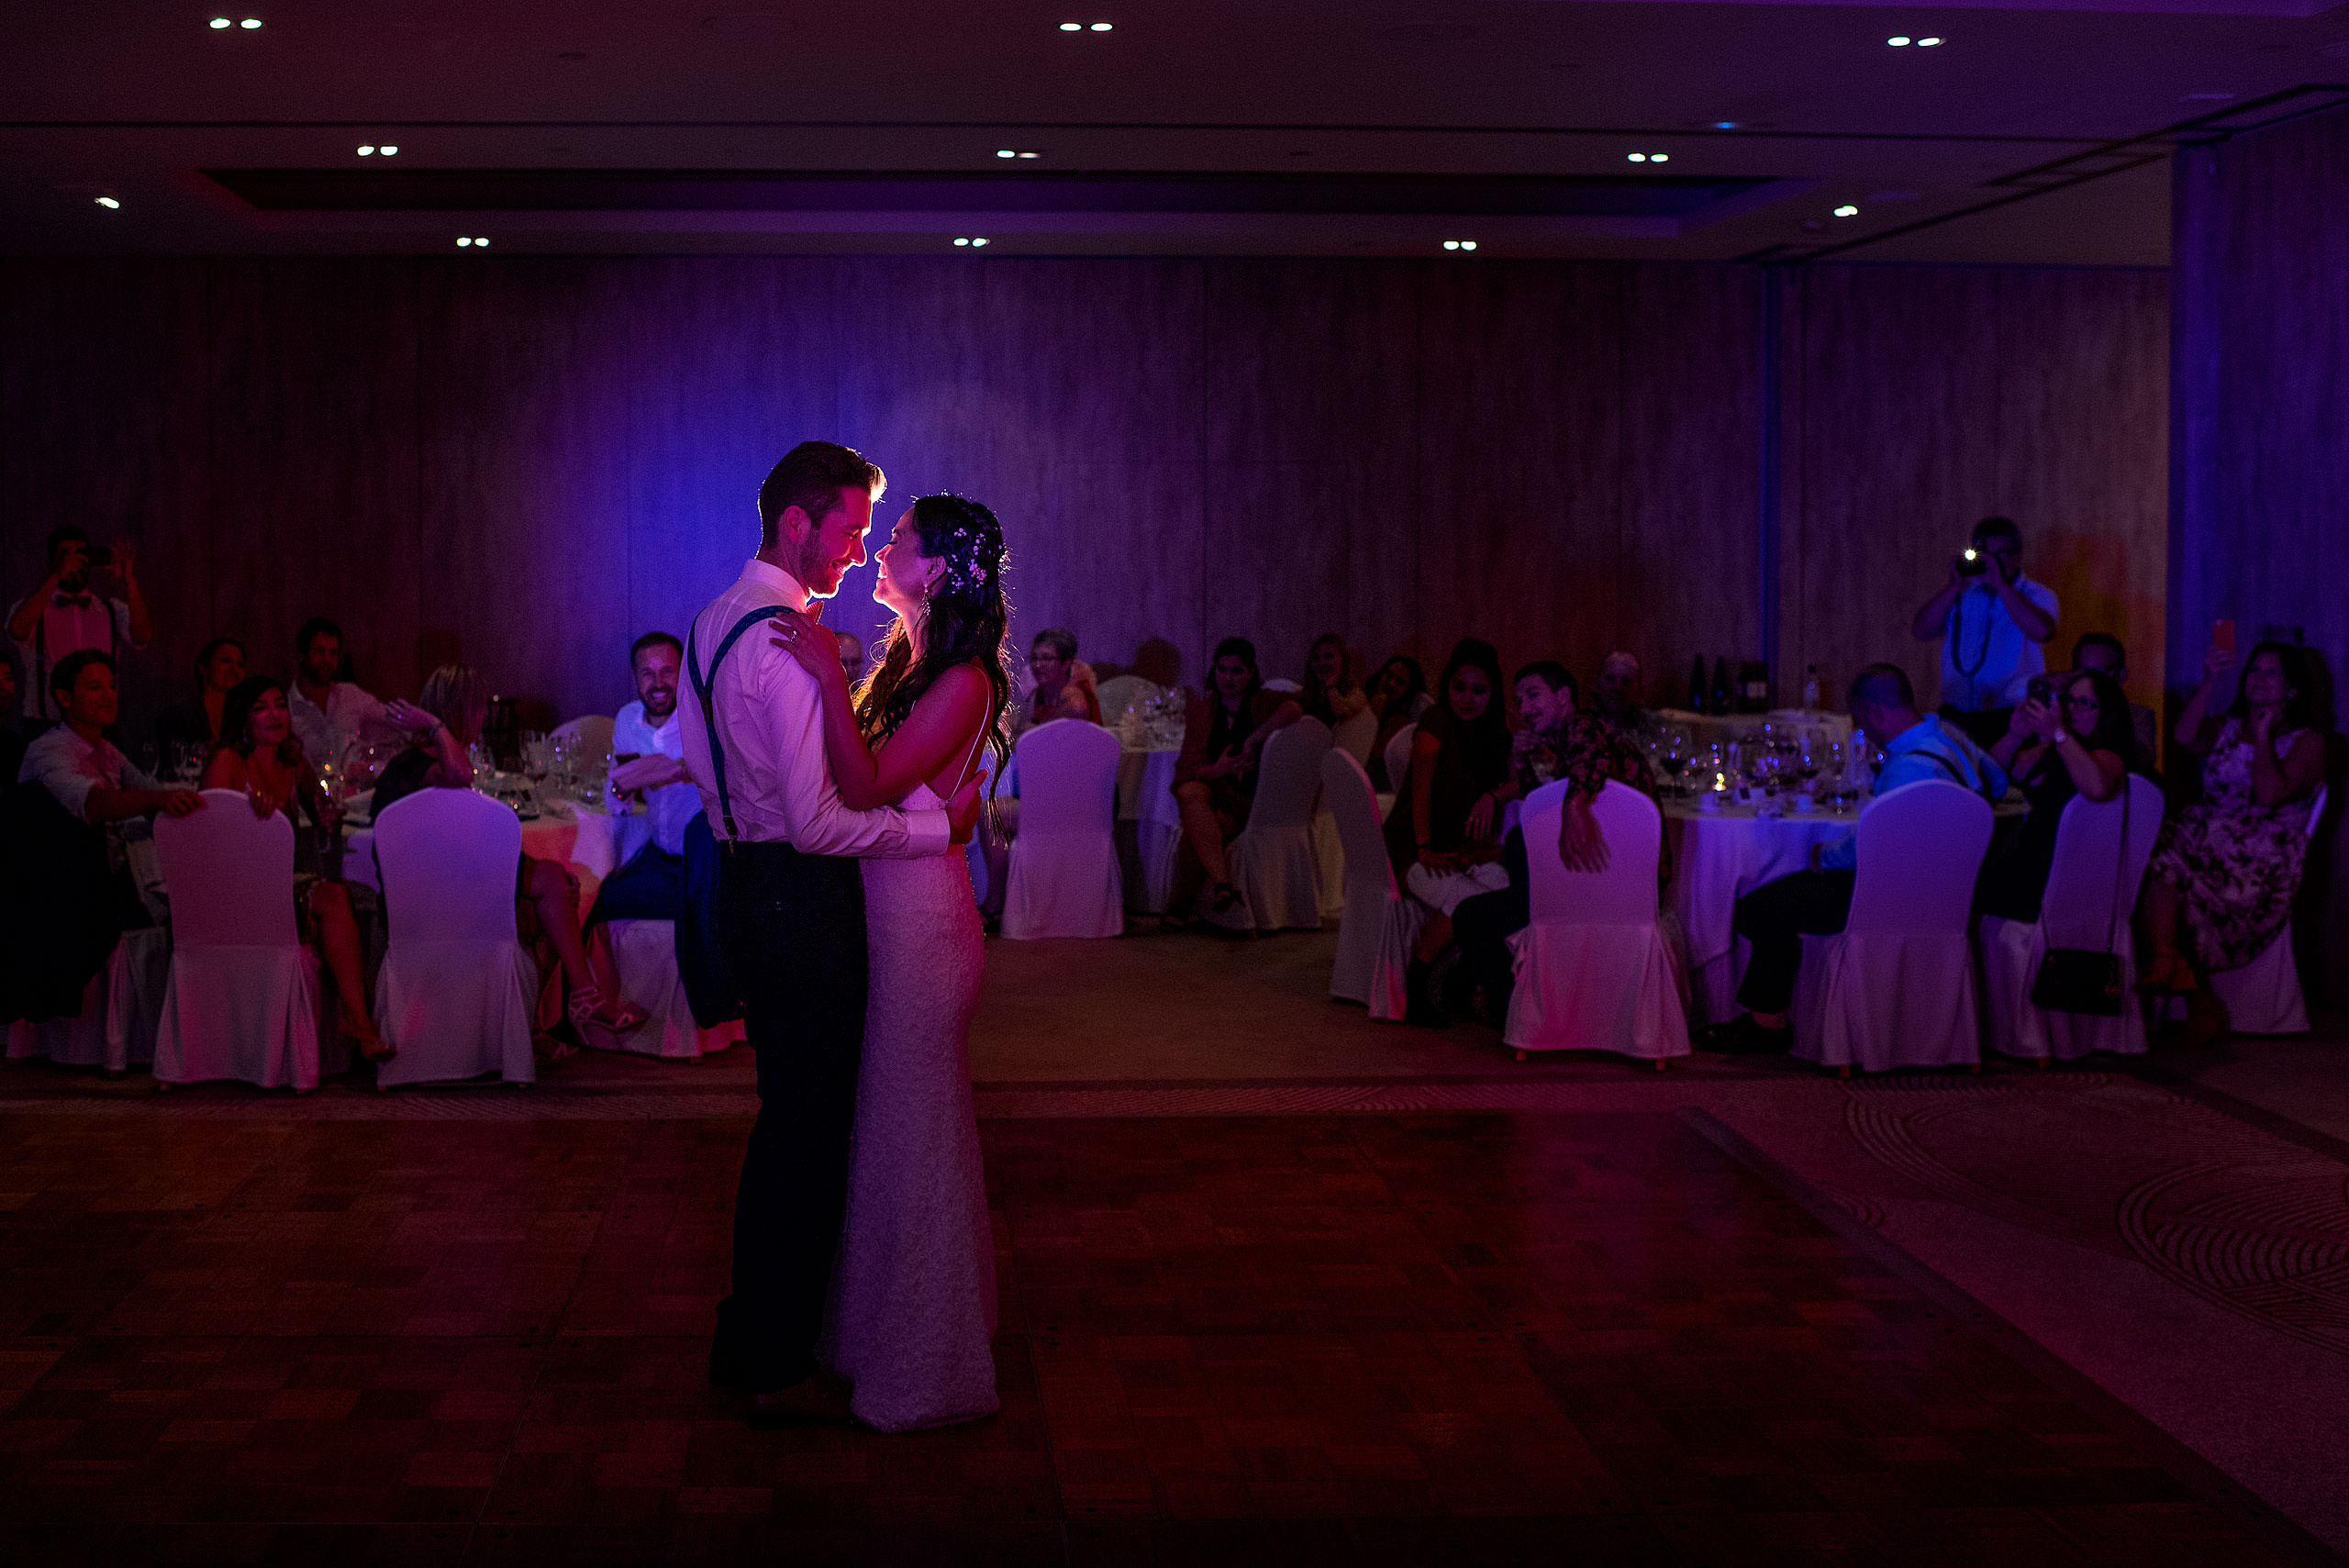 a bride and groom dancing at their wedding reception at castillo hotel son vida destination wedding by sean leblanc